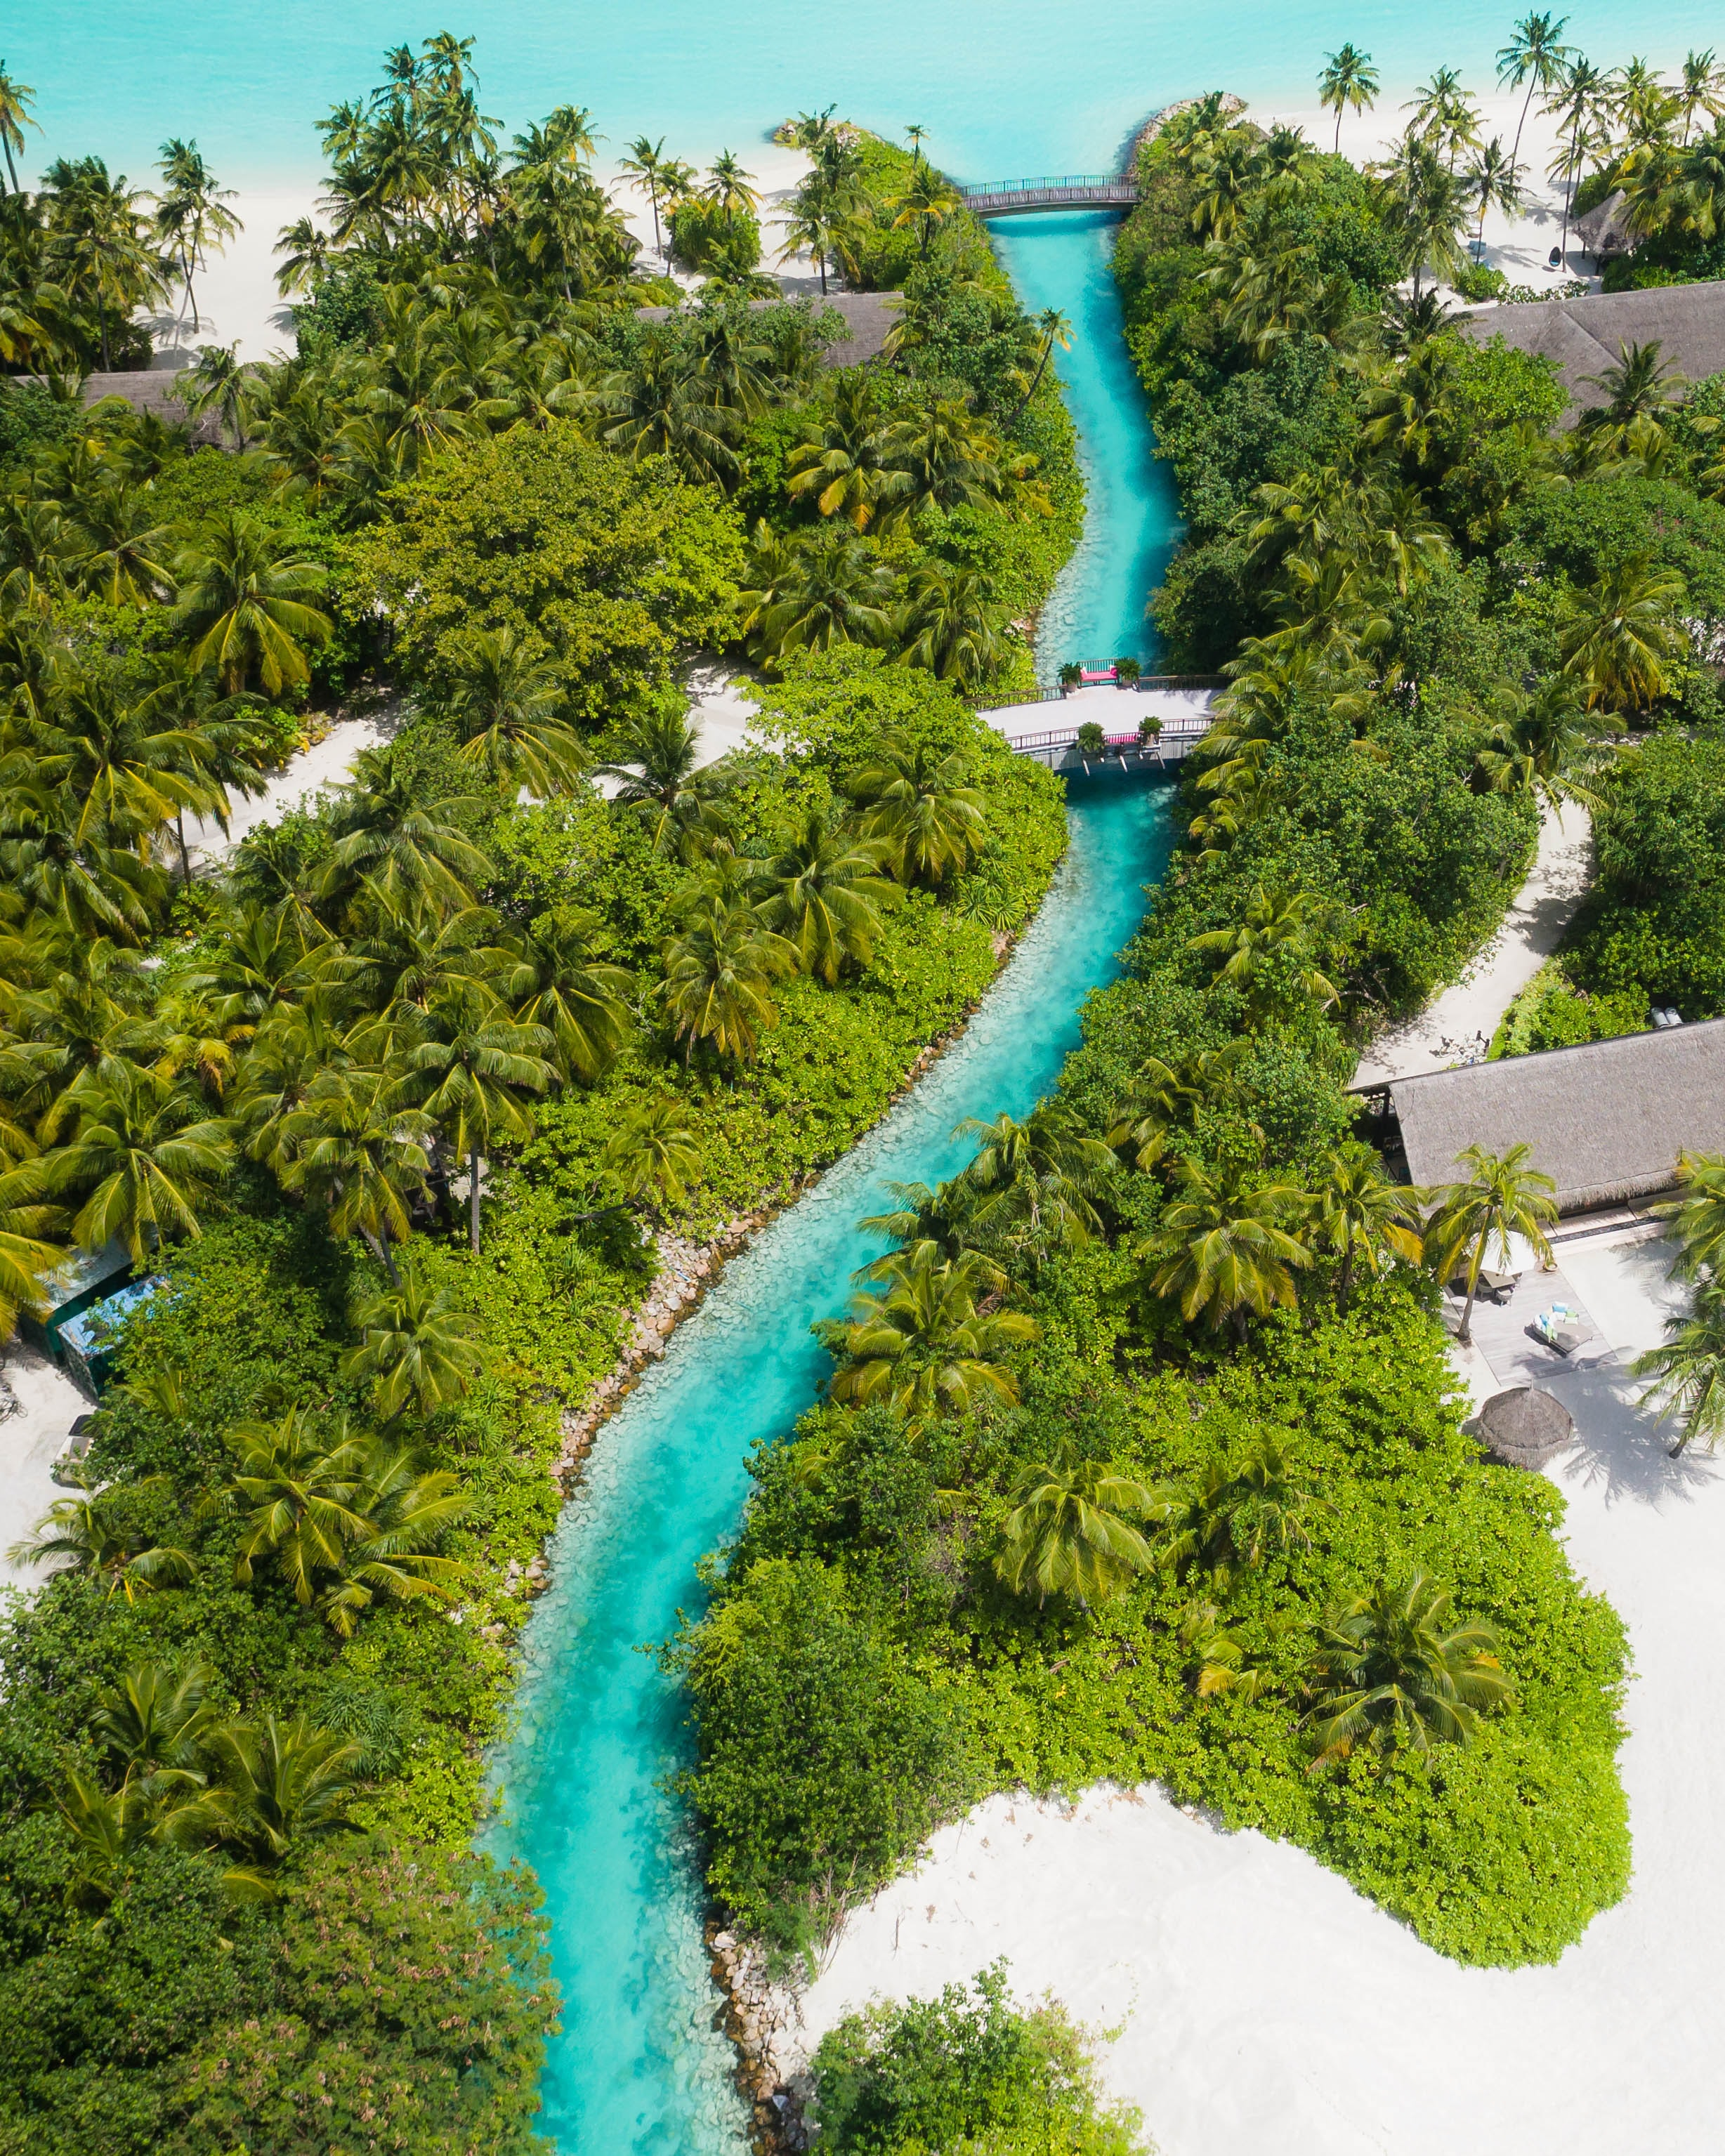 Resort canal into the sea in the Maldives